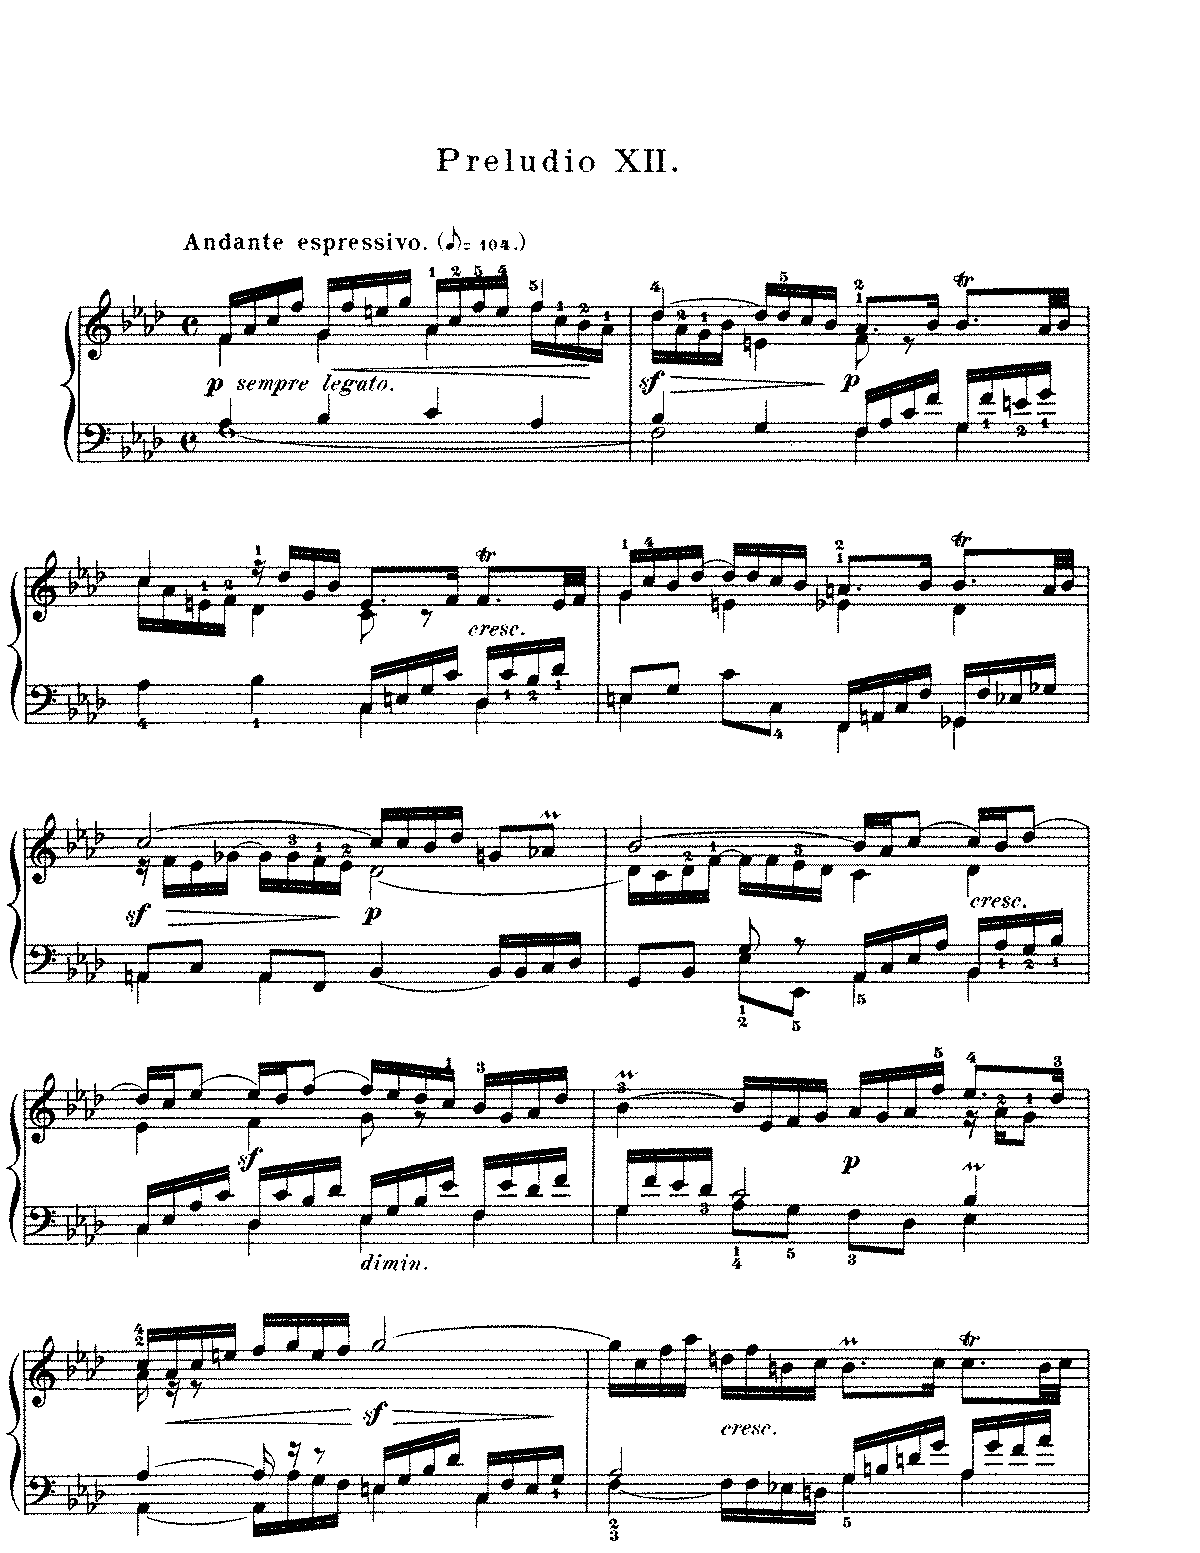 Prelude and fugue in f minor bwv 857 bach johann sebastian all editionsschirmer volinted copy of this file hexwebz Image collections